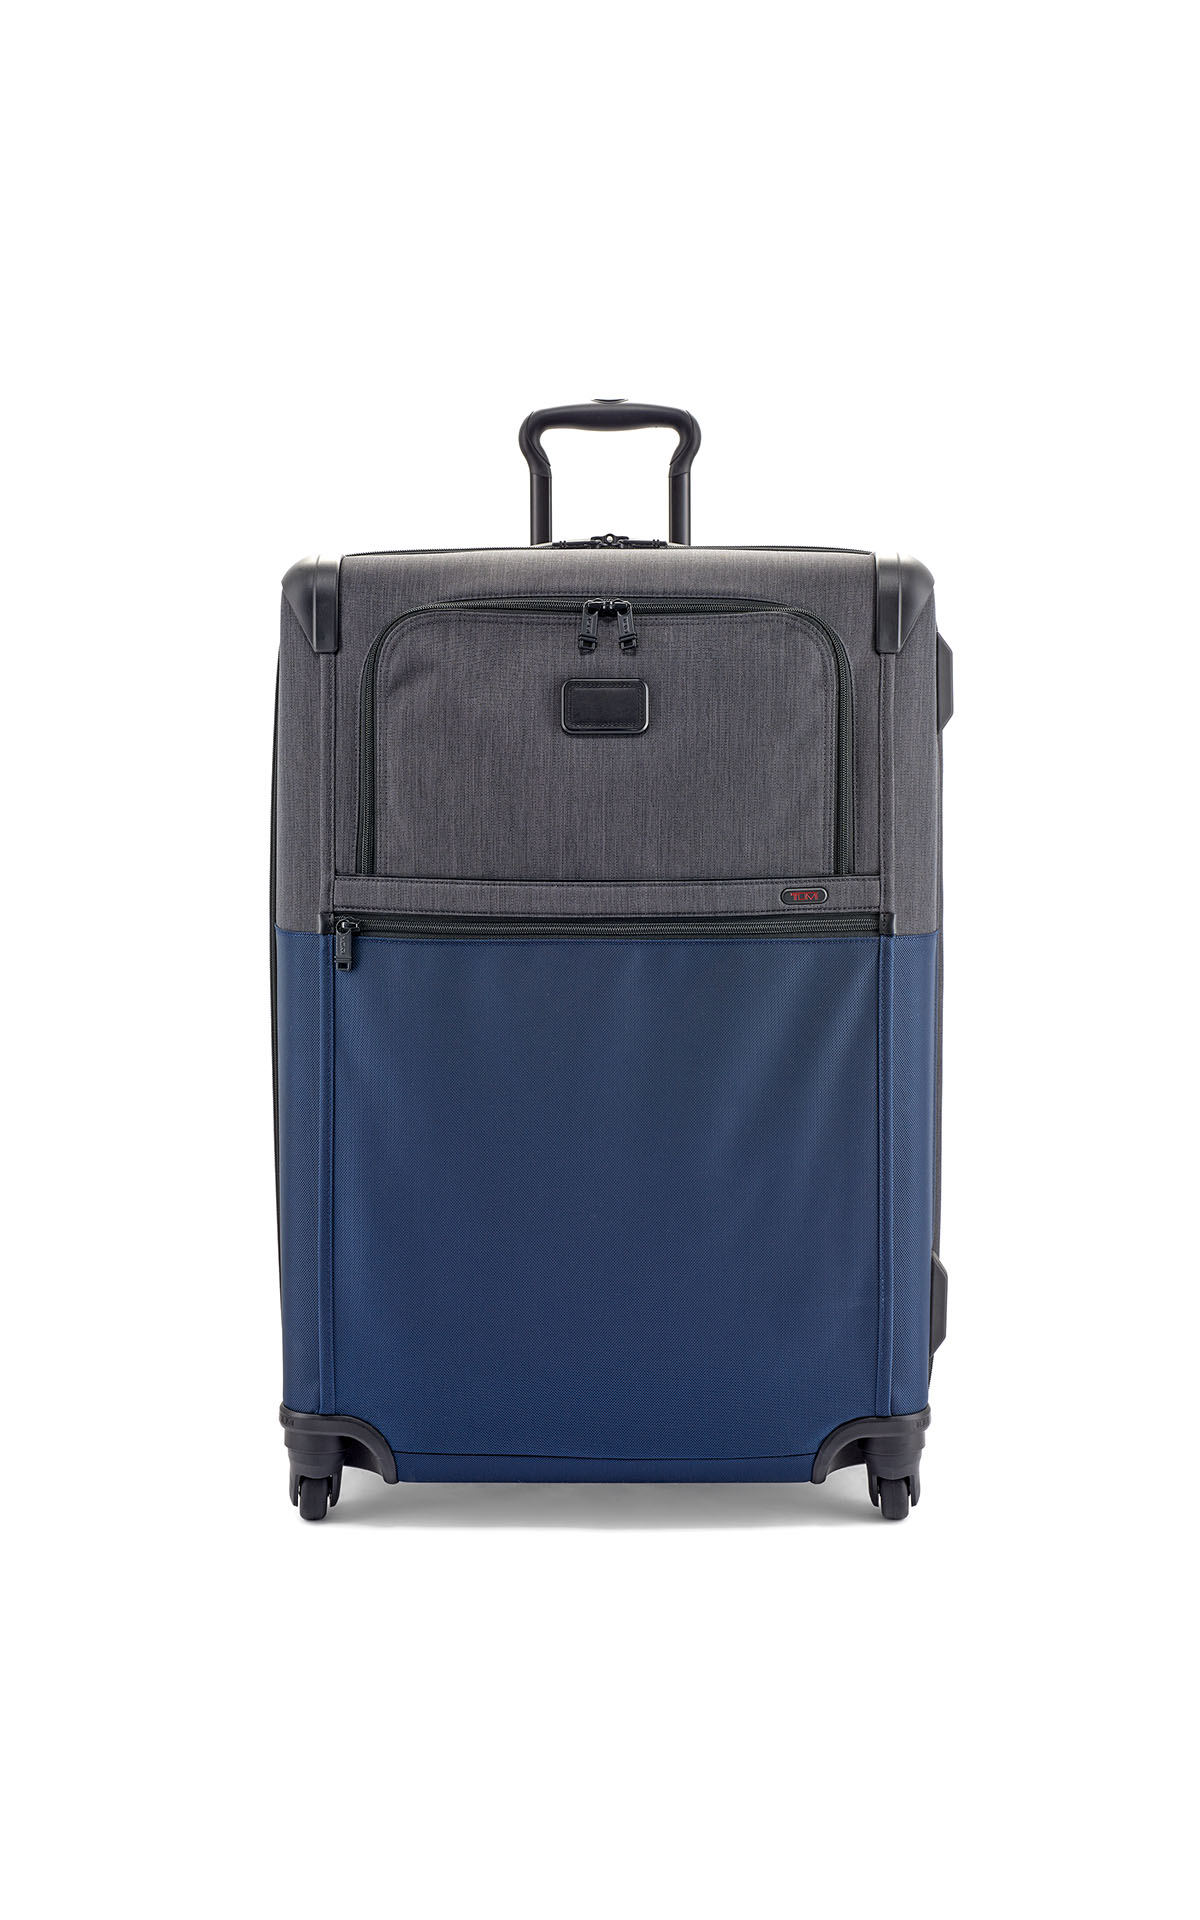 Tumi MD Trip Exp 4WHL p/c at The Bicester Village Shopping Collection